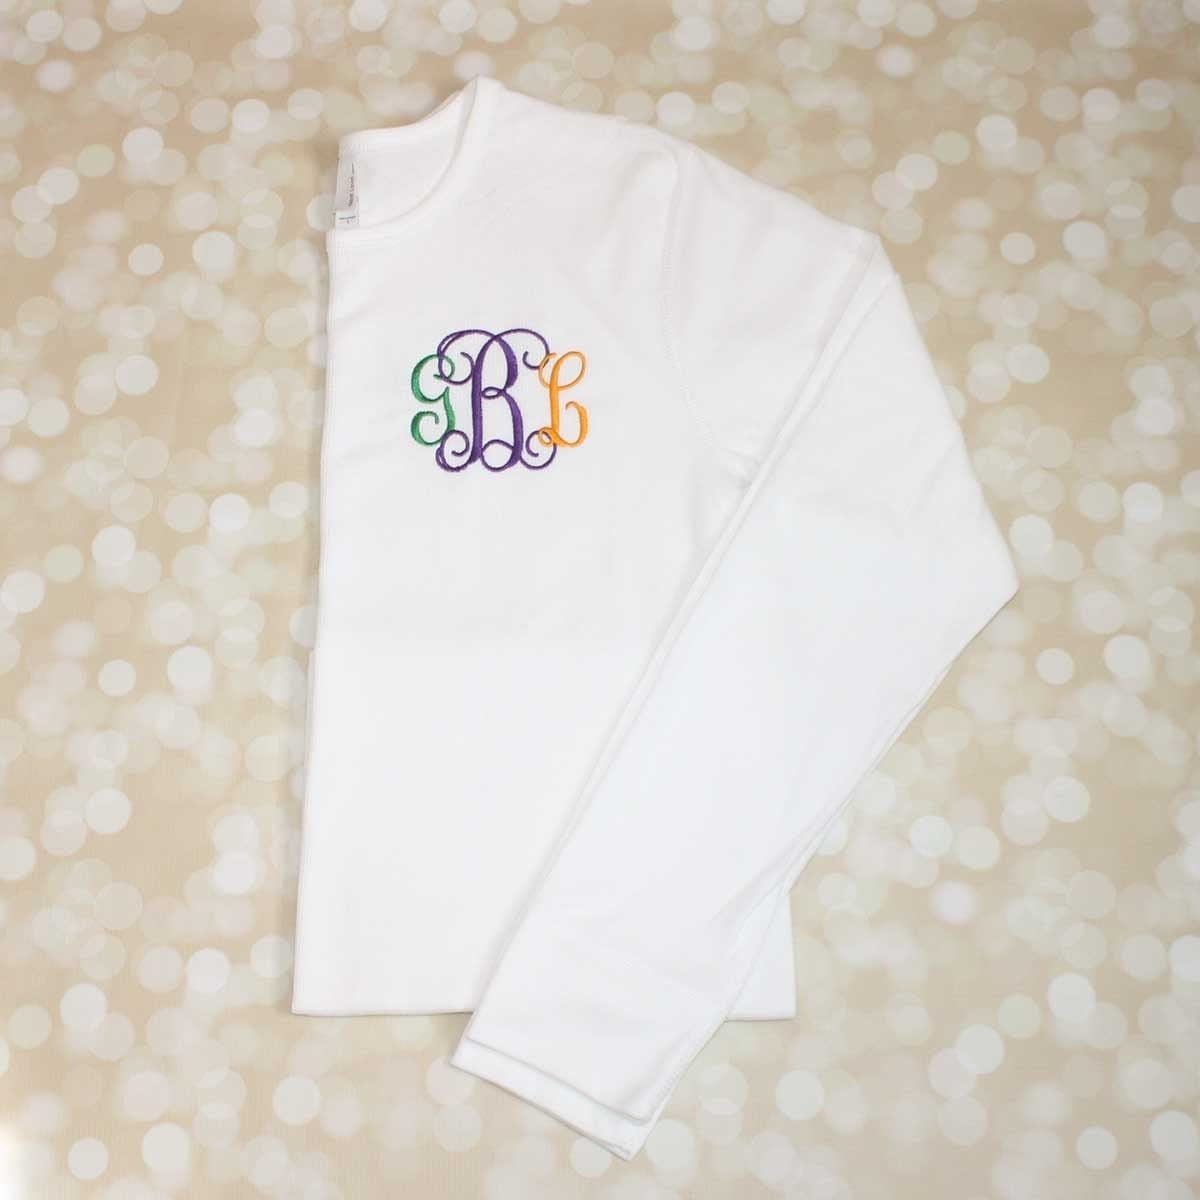 3487dfa1e4364 Monogrammed Mardi Gras Thermal Shirt - GLAM - Girls Love A Monogram